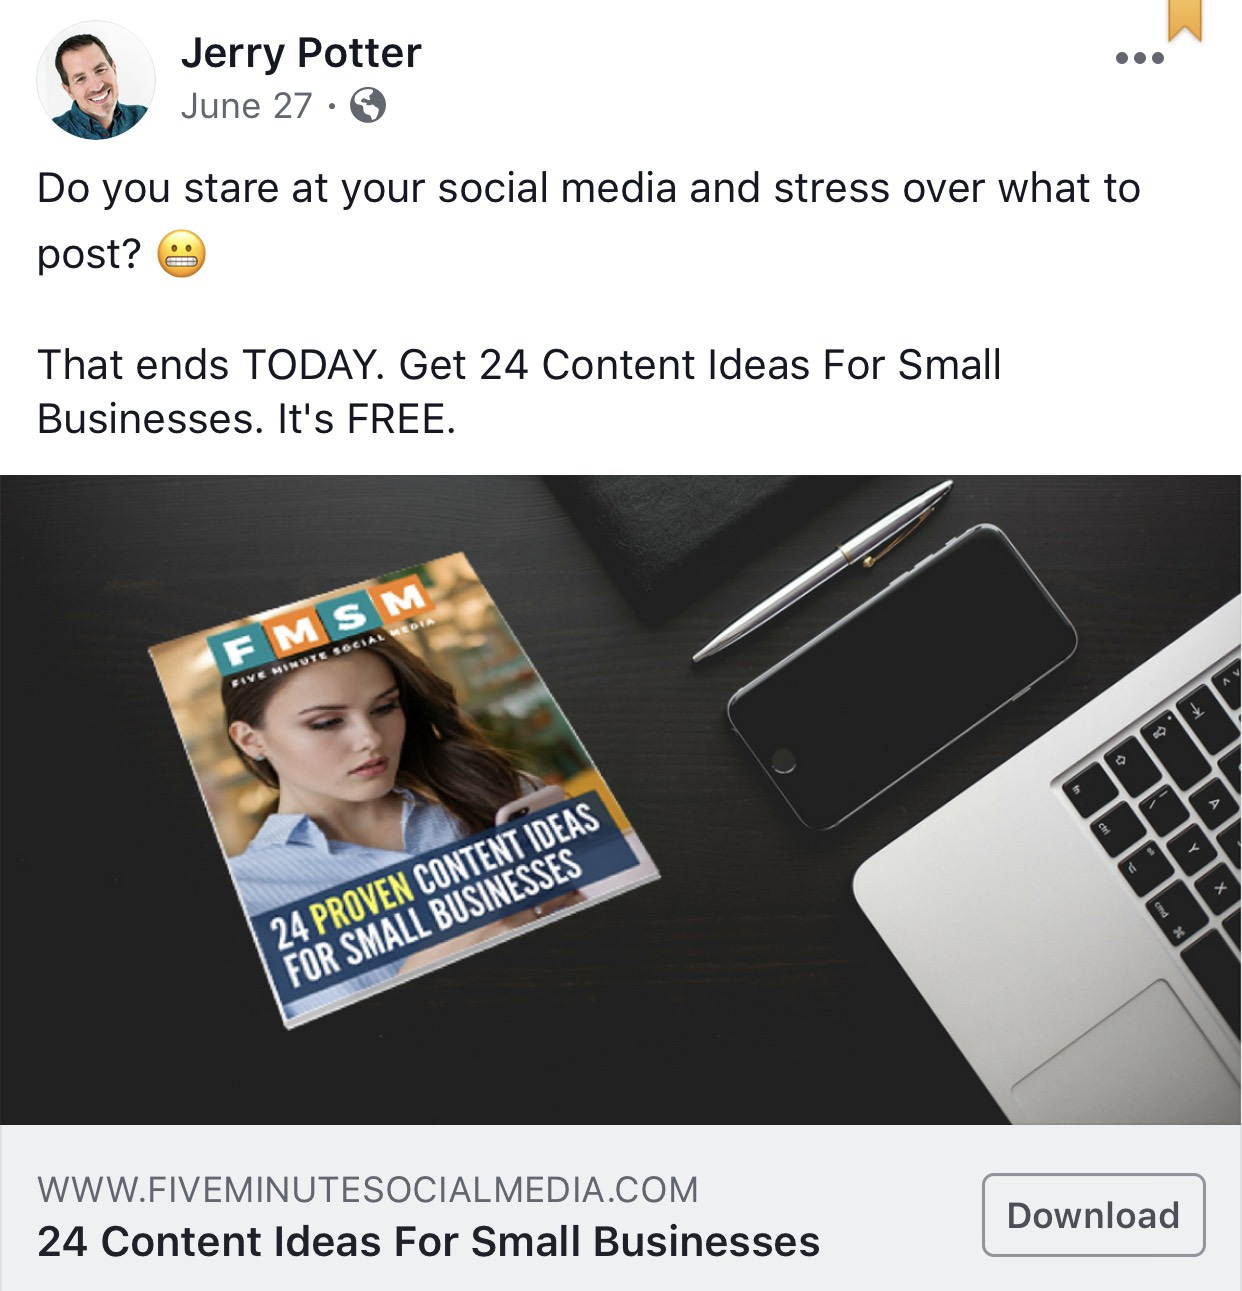 facebook-link-ad-with-1200-by-628-image-size - Five Minute